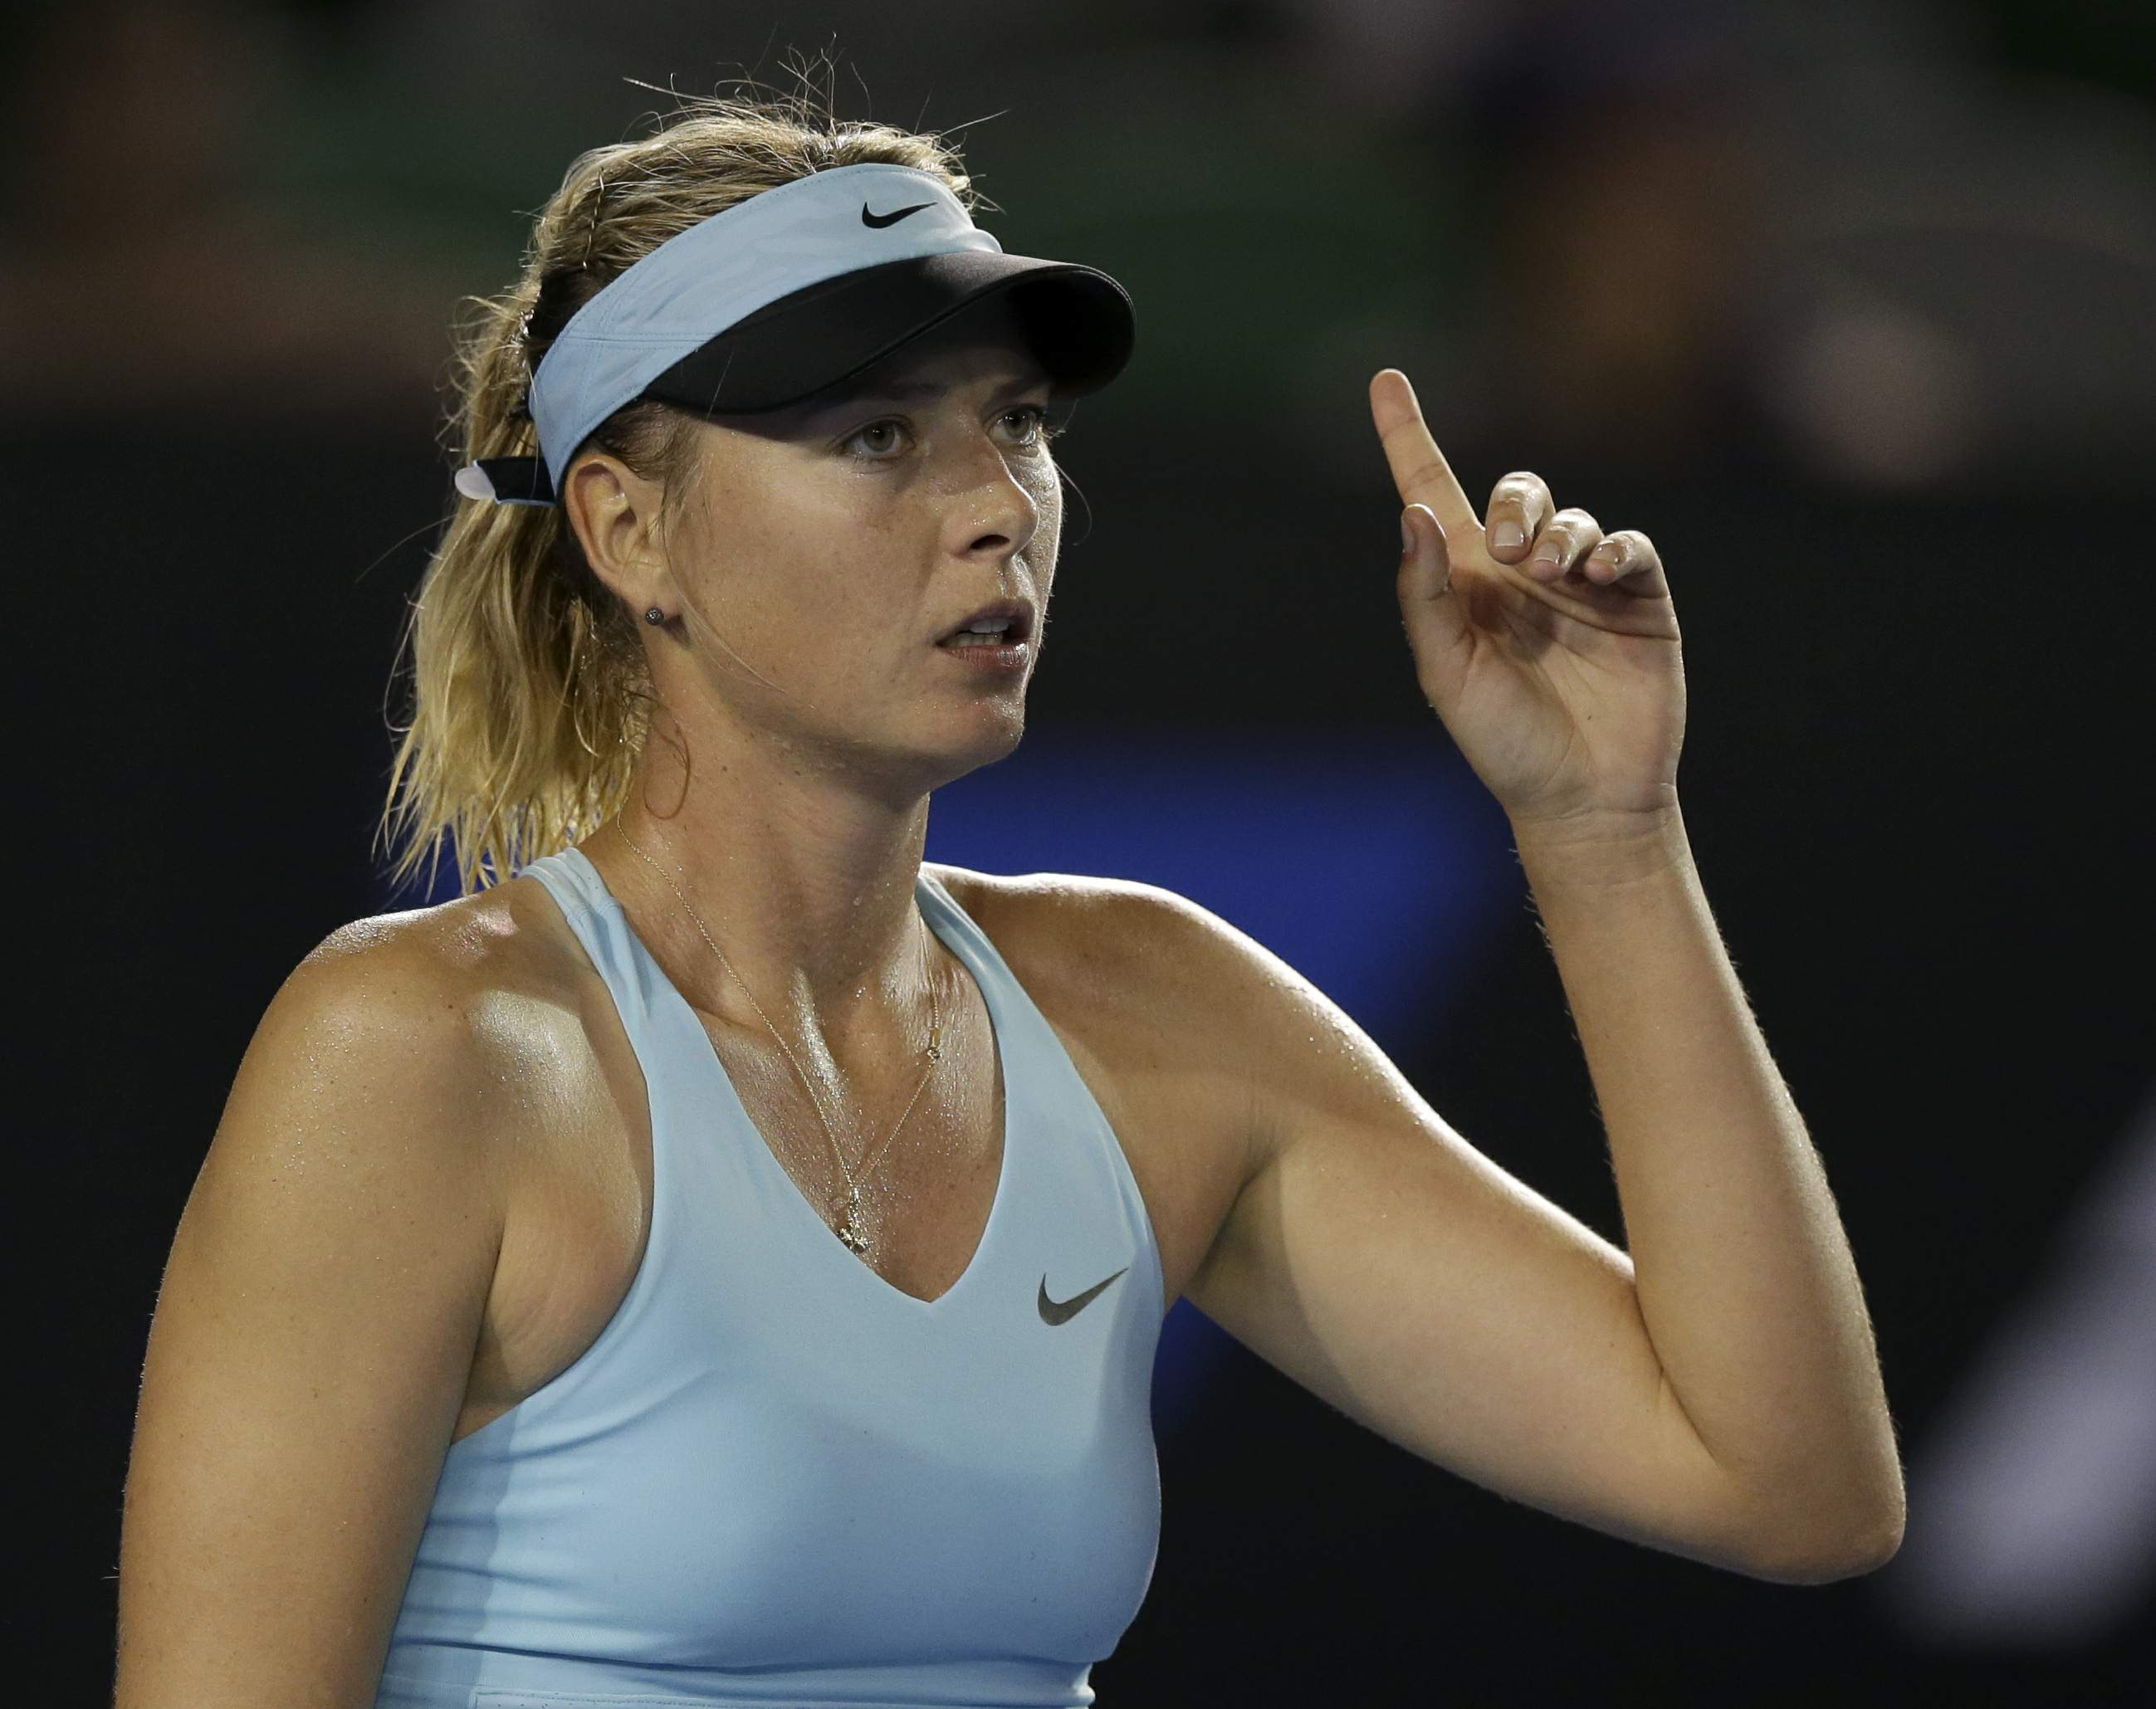 my favourite personality maria sharapova Sharapova was seeded fifth at the australian open, but was not considered a favorite nevertheless maria sharapova reached the quarterfinals.